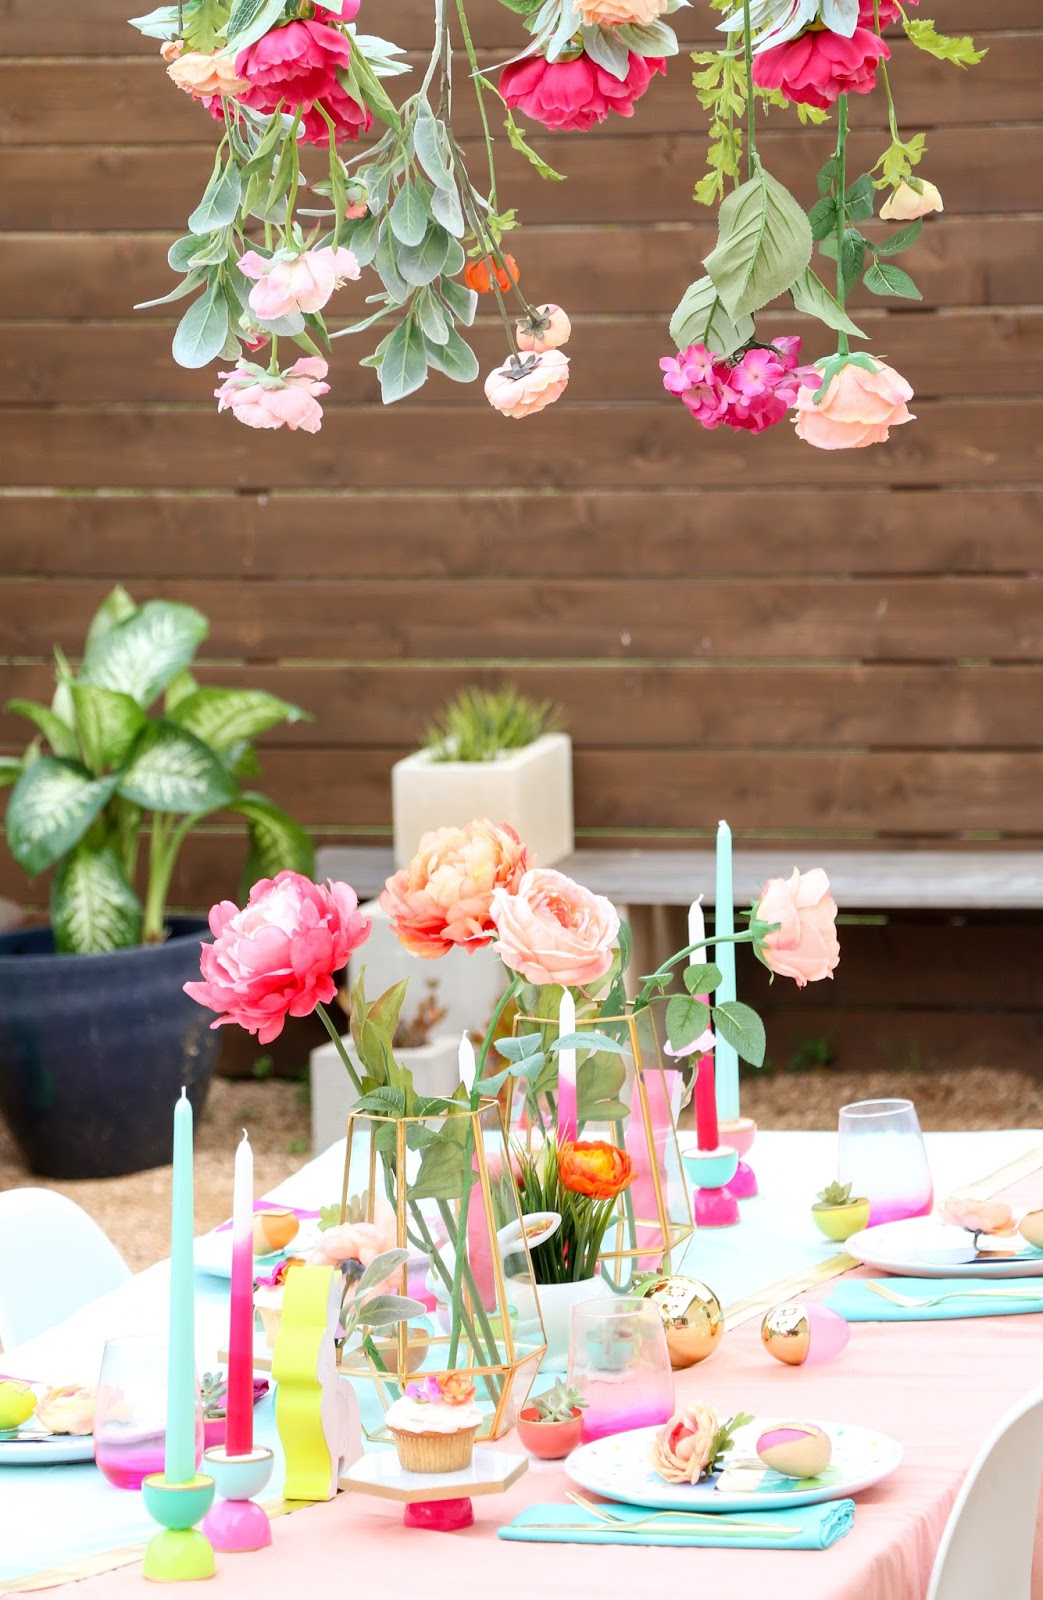 Style It u2013 A Spring Table Setting : spring table setting ideas - pezcame.com